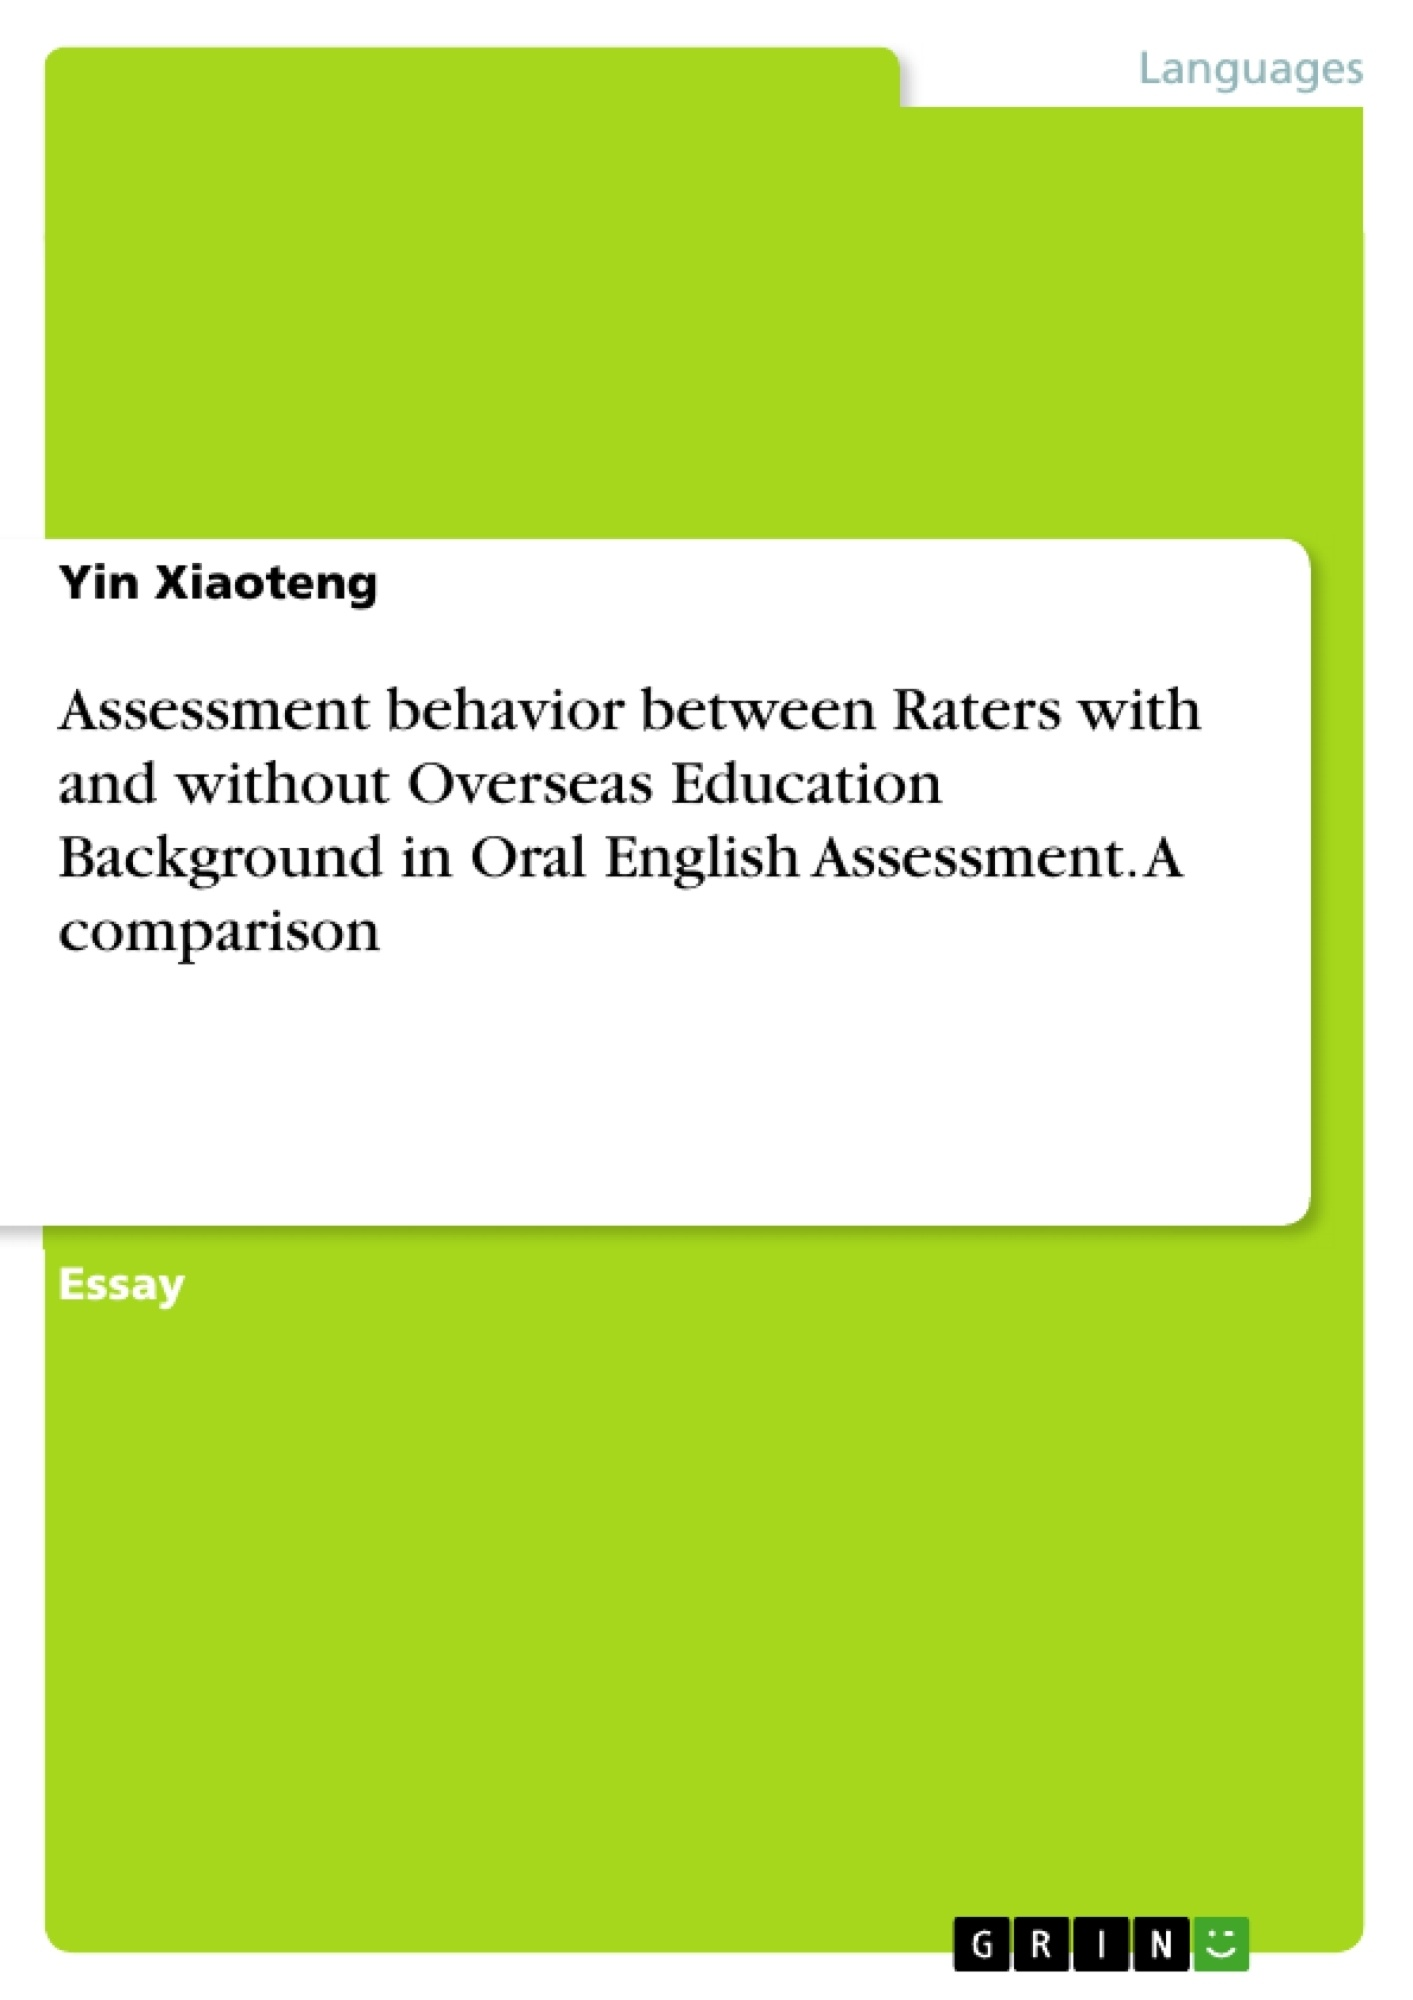 Title: Assessment behavior between Raters with and without Overseas Education Background in Oral English Assessment. A comparison